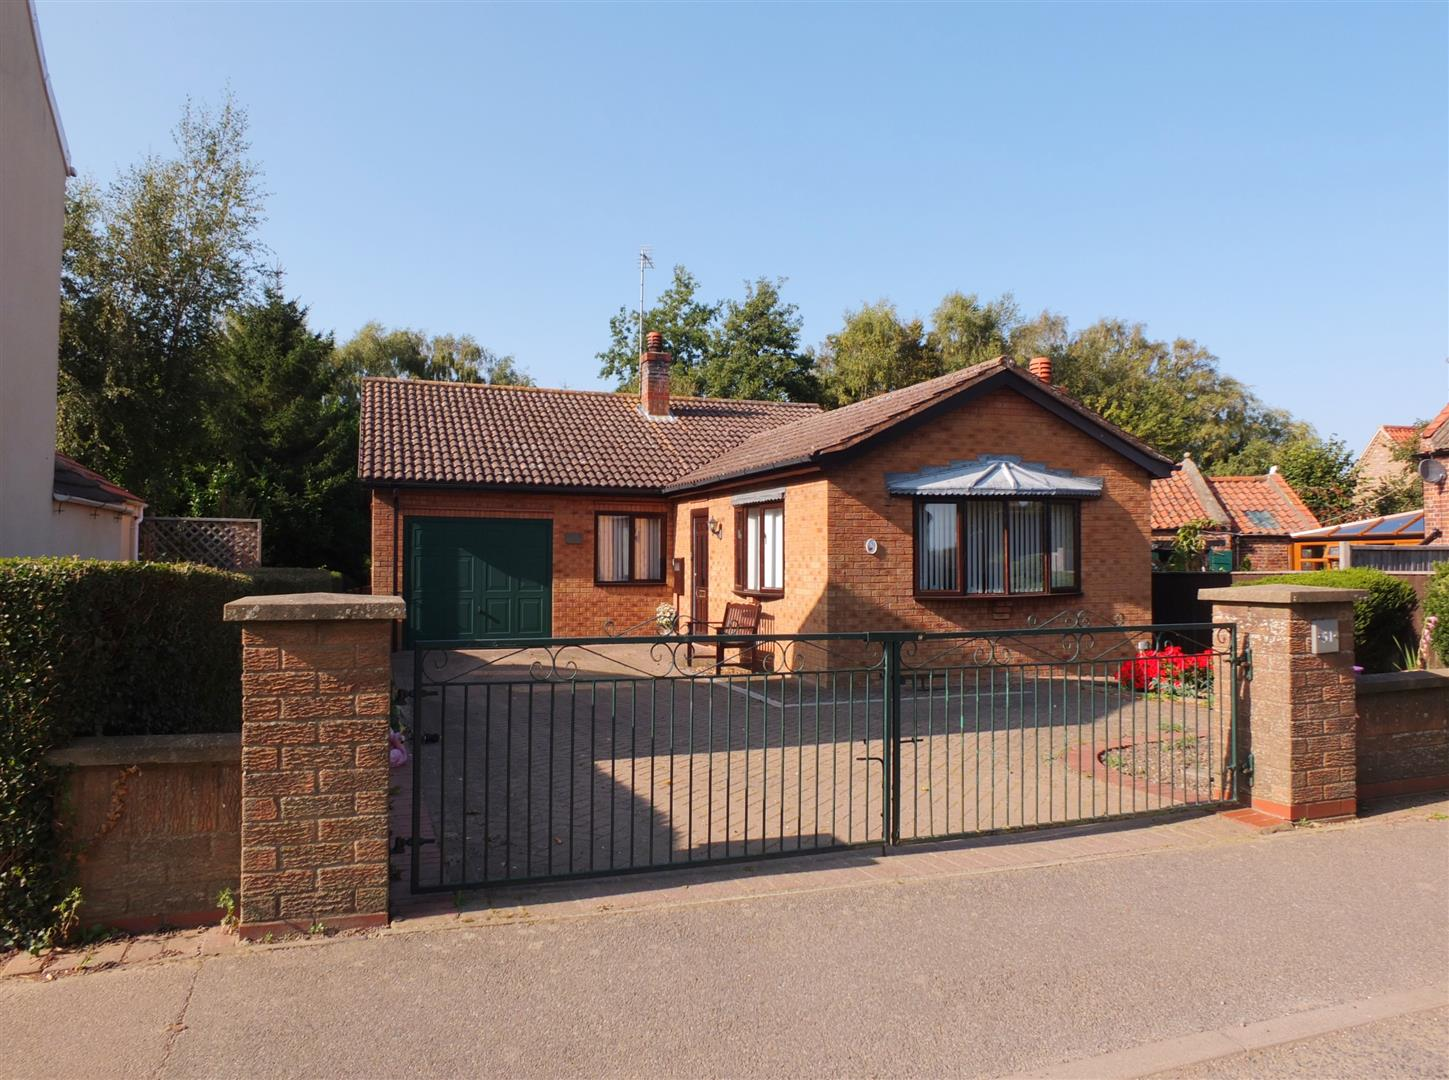 3 bed detached bungalow for sale in Gedney Dyke Spalding, PE12 0AJ  - Property Image 1